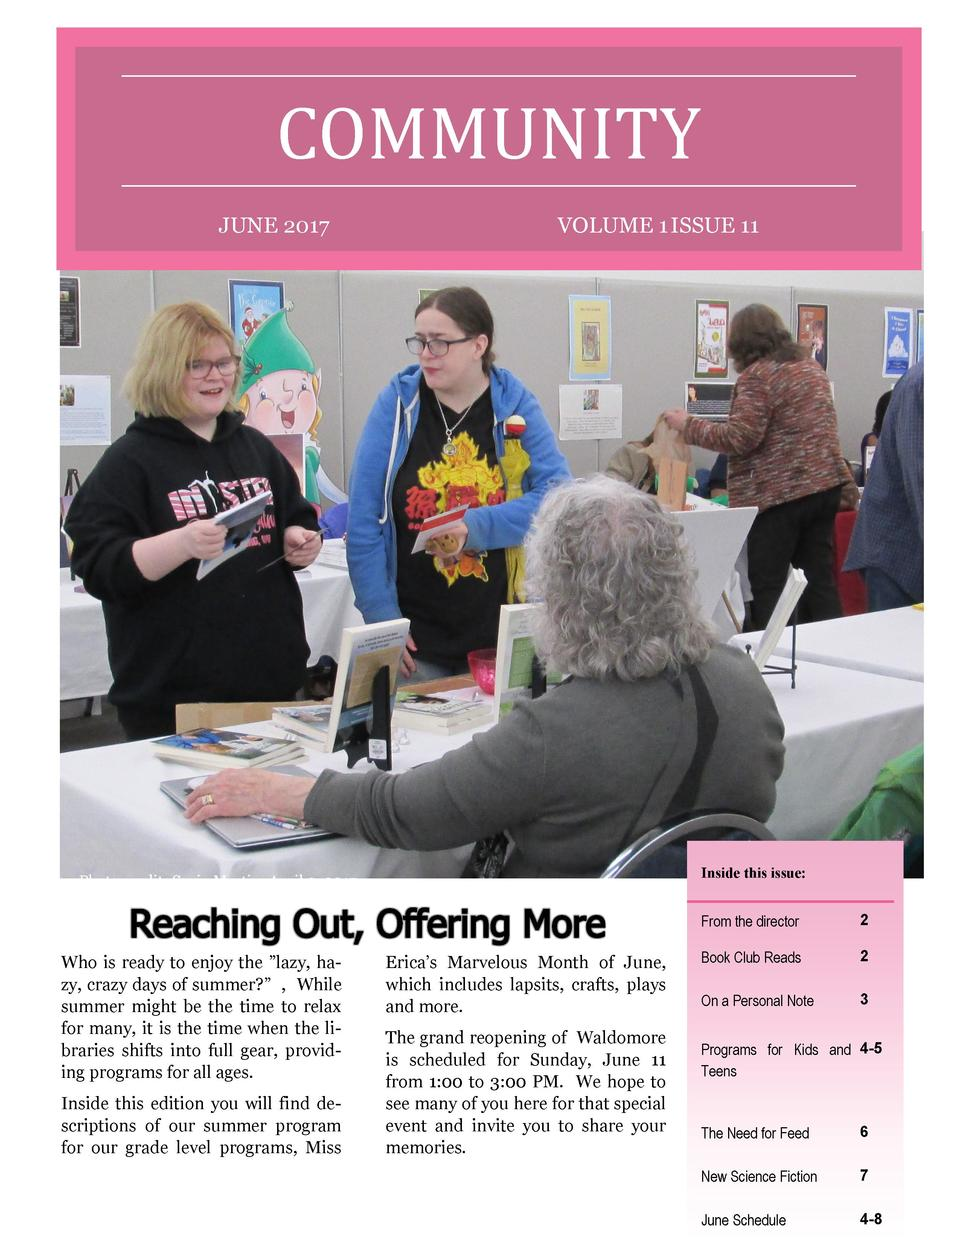 COMMUNITY JUNE 2017  VOLUME 1 ISSUE 11  Inside this issue   Photo credit  Suzie Martin, April 3, 2017.  Who is ready to en...